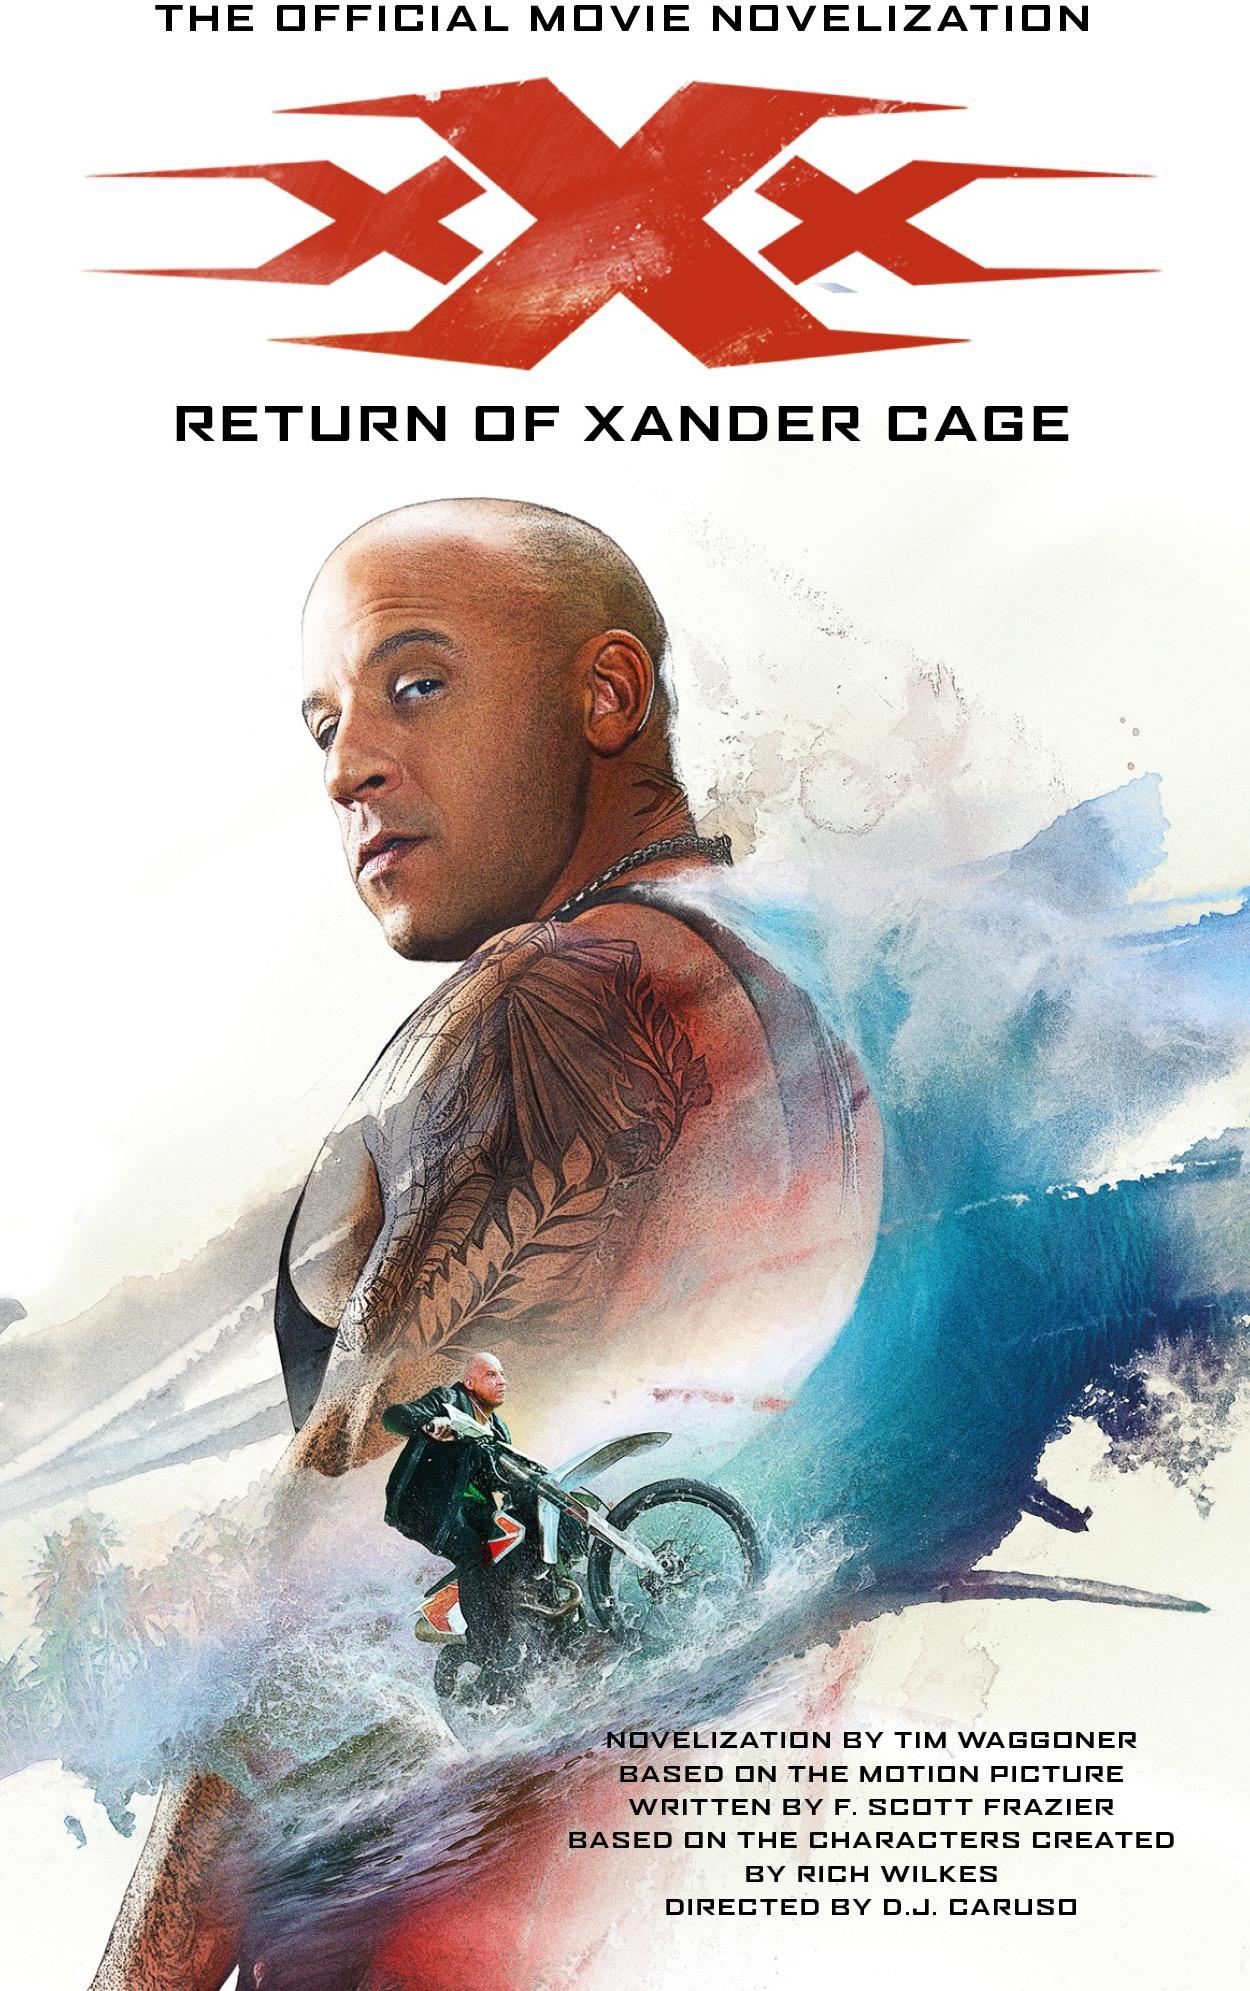 xXx: Return of Xander Cage - The Official Movie Novelization xxx return of xander cage the official movie novelization